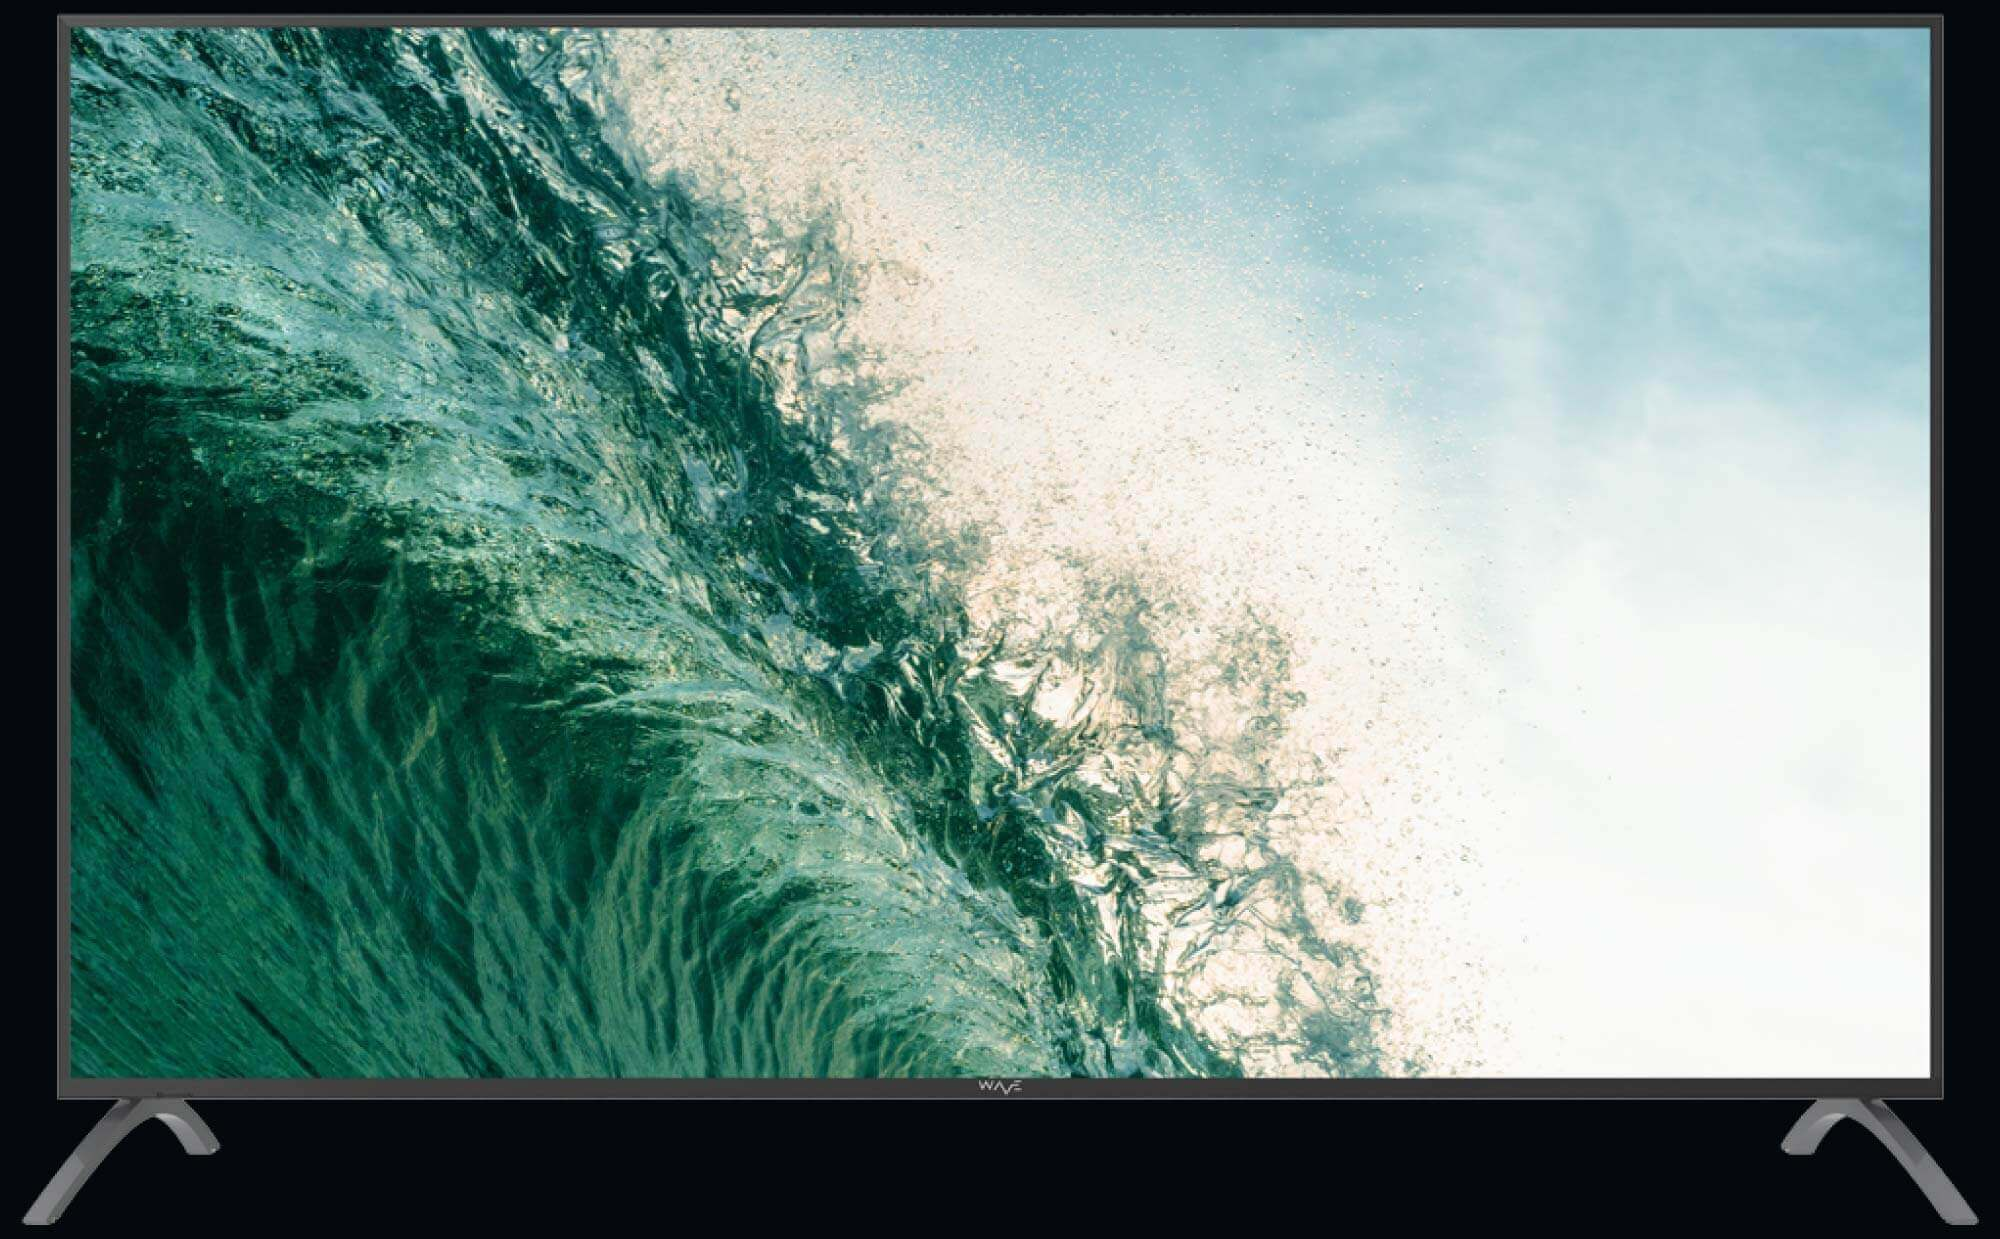 WAVE Electronics introduces Tsunami - a spectacular smart TV with a massive 86 inch 4K screen